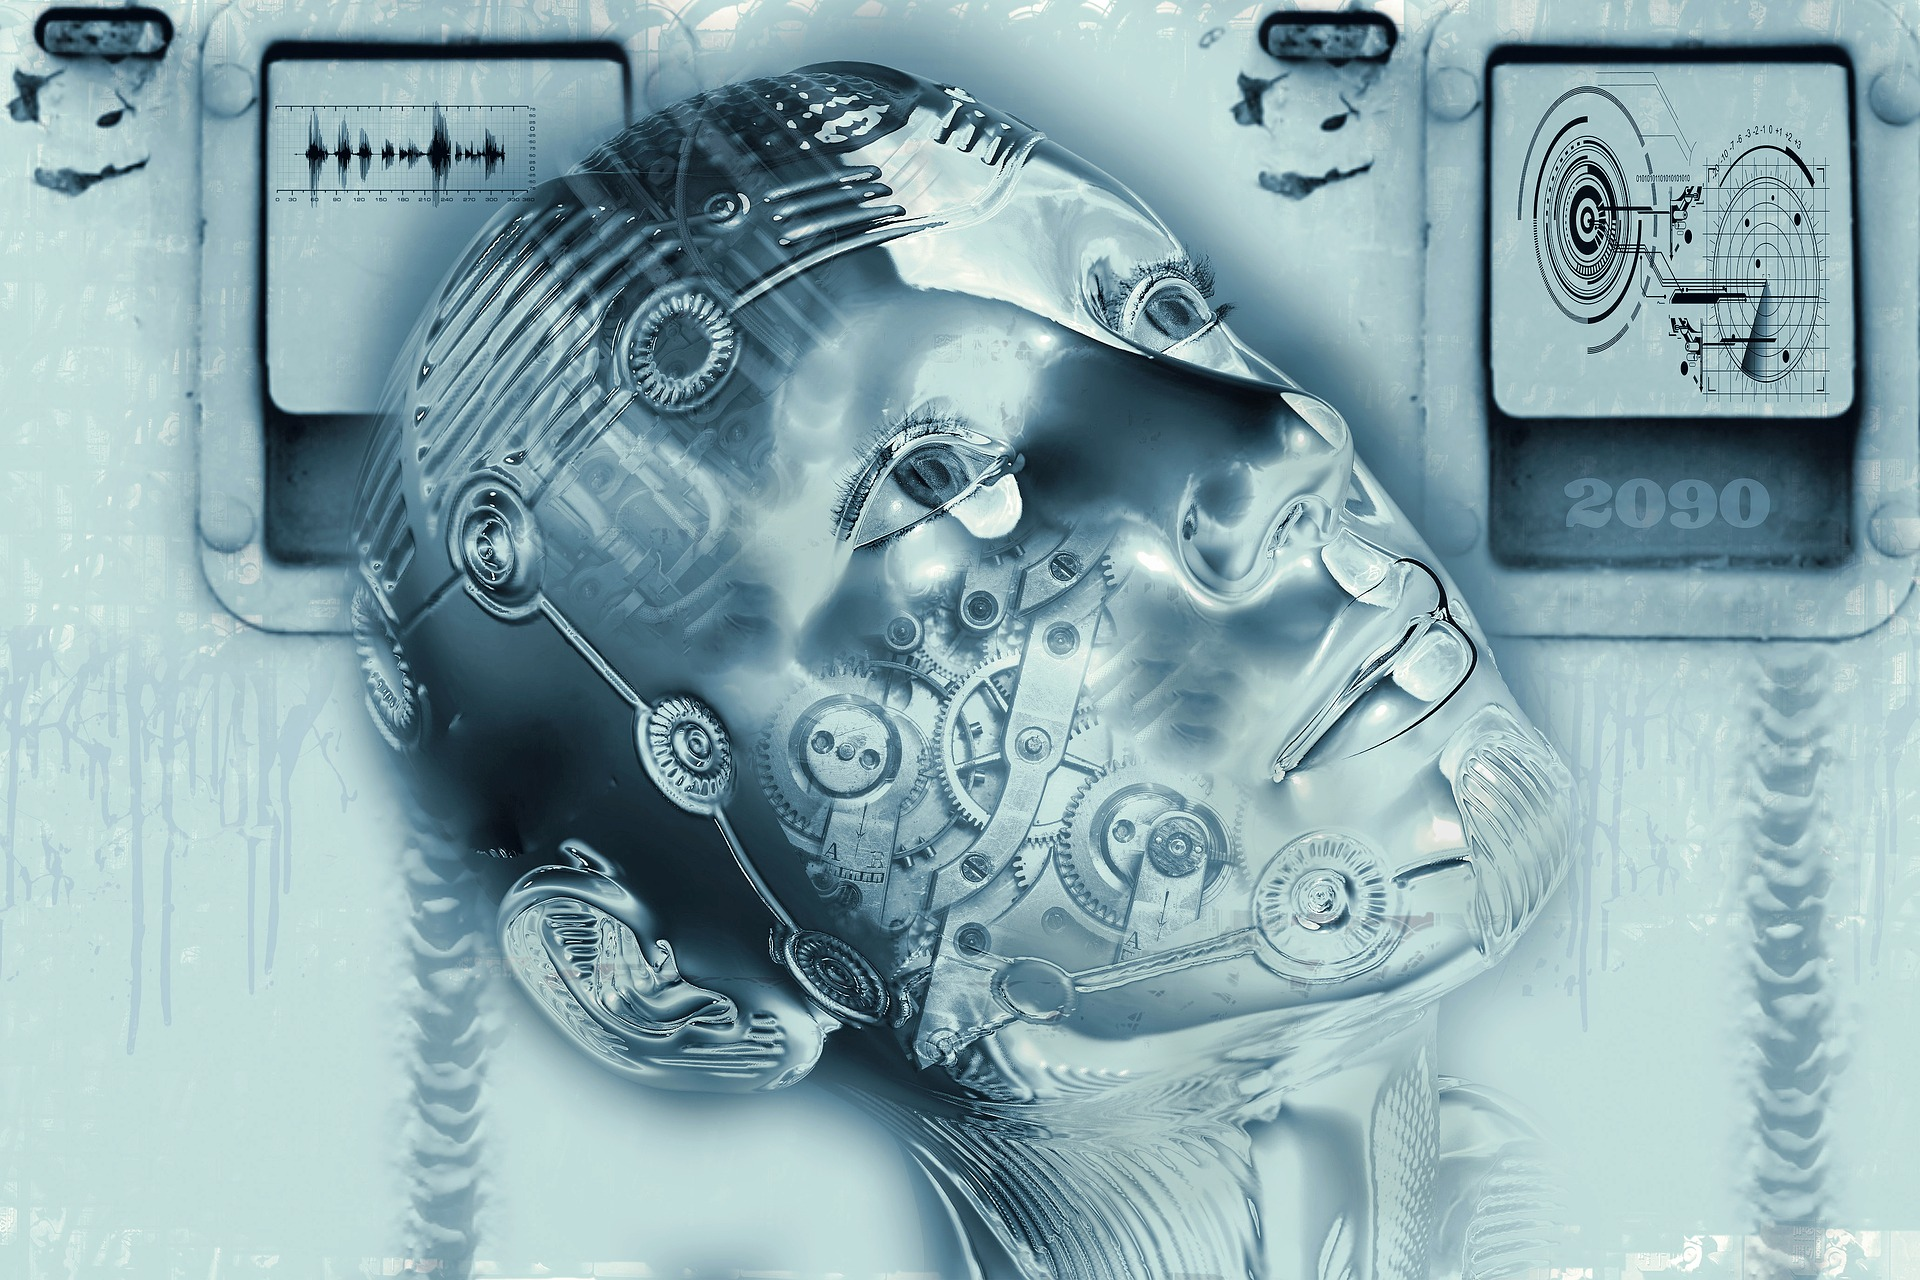 """AI - The Gen Z and the """"Artificial Intelligence"""" viewpoint"""